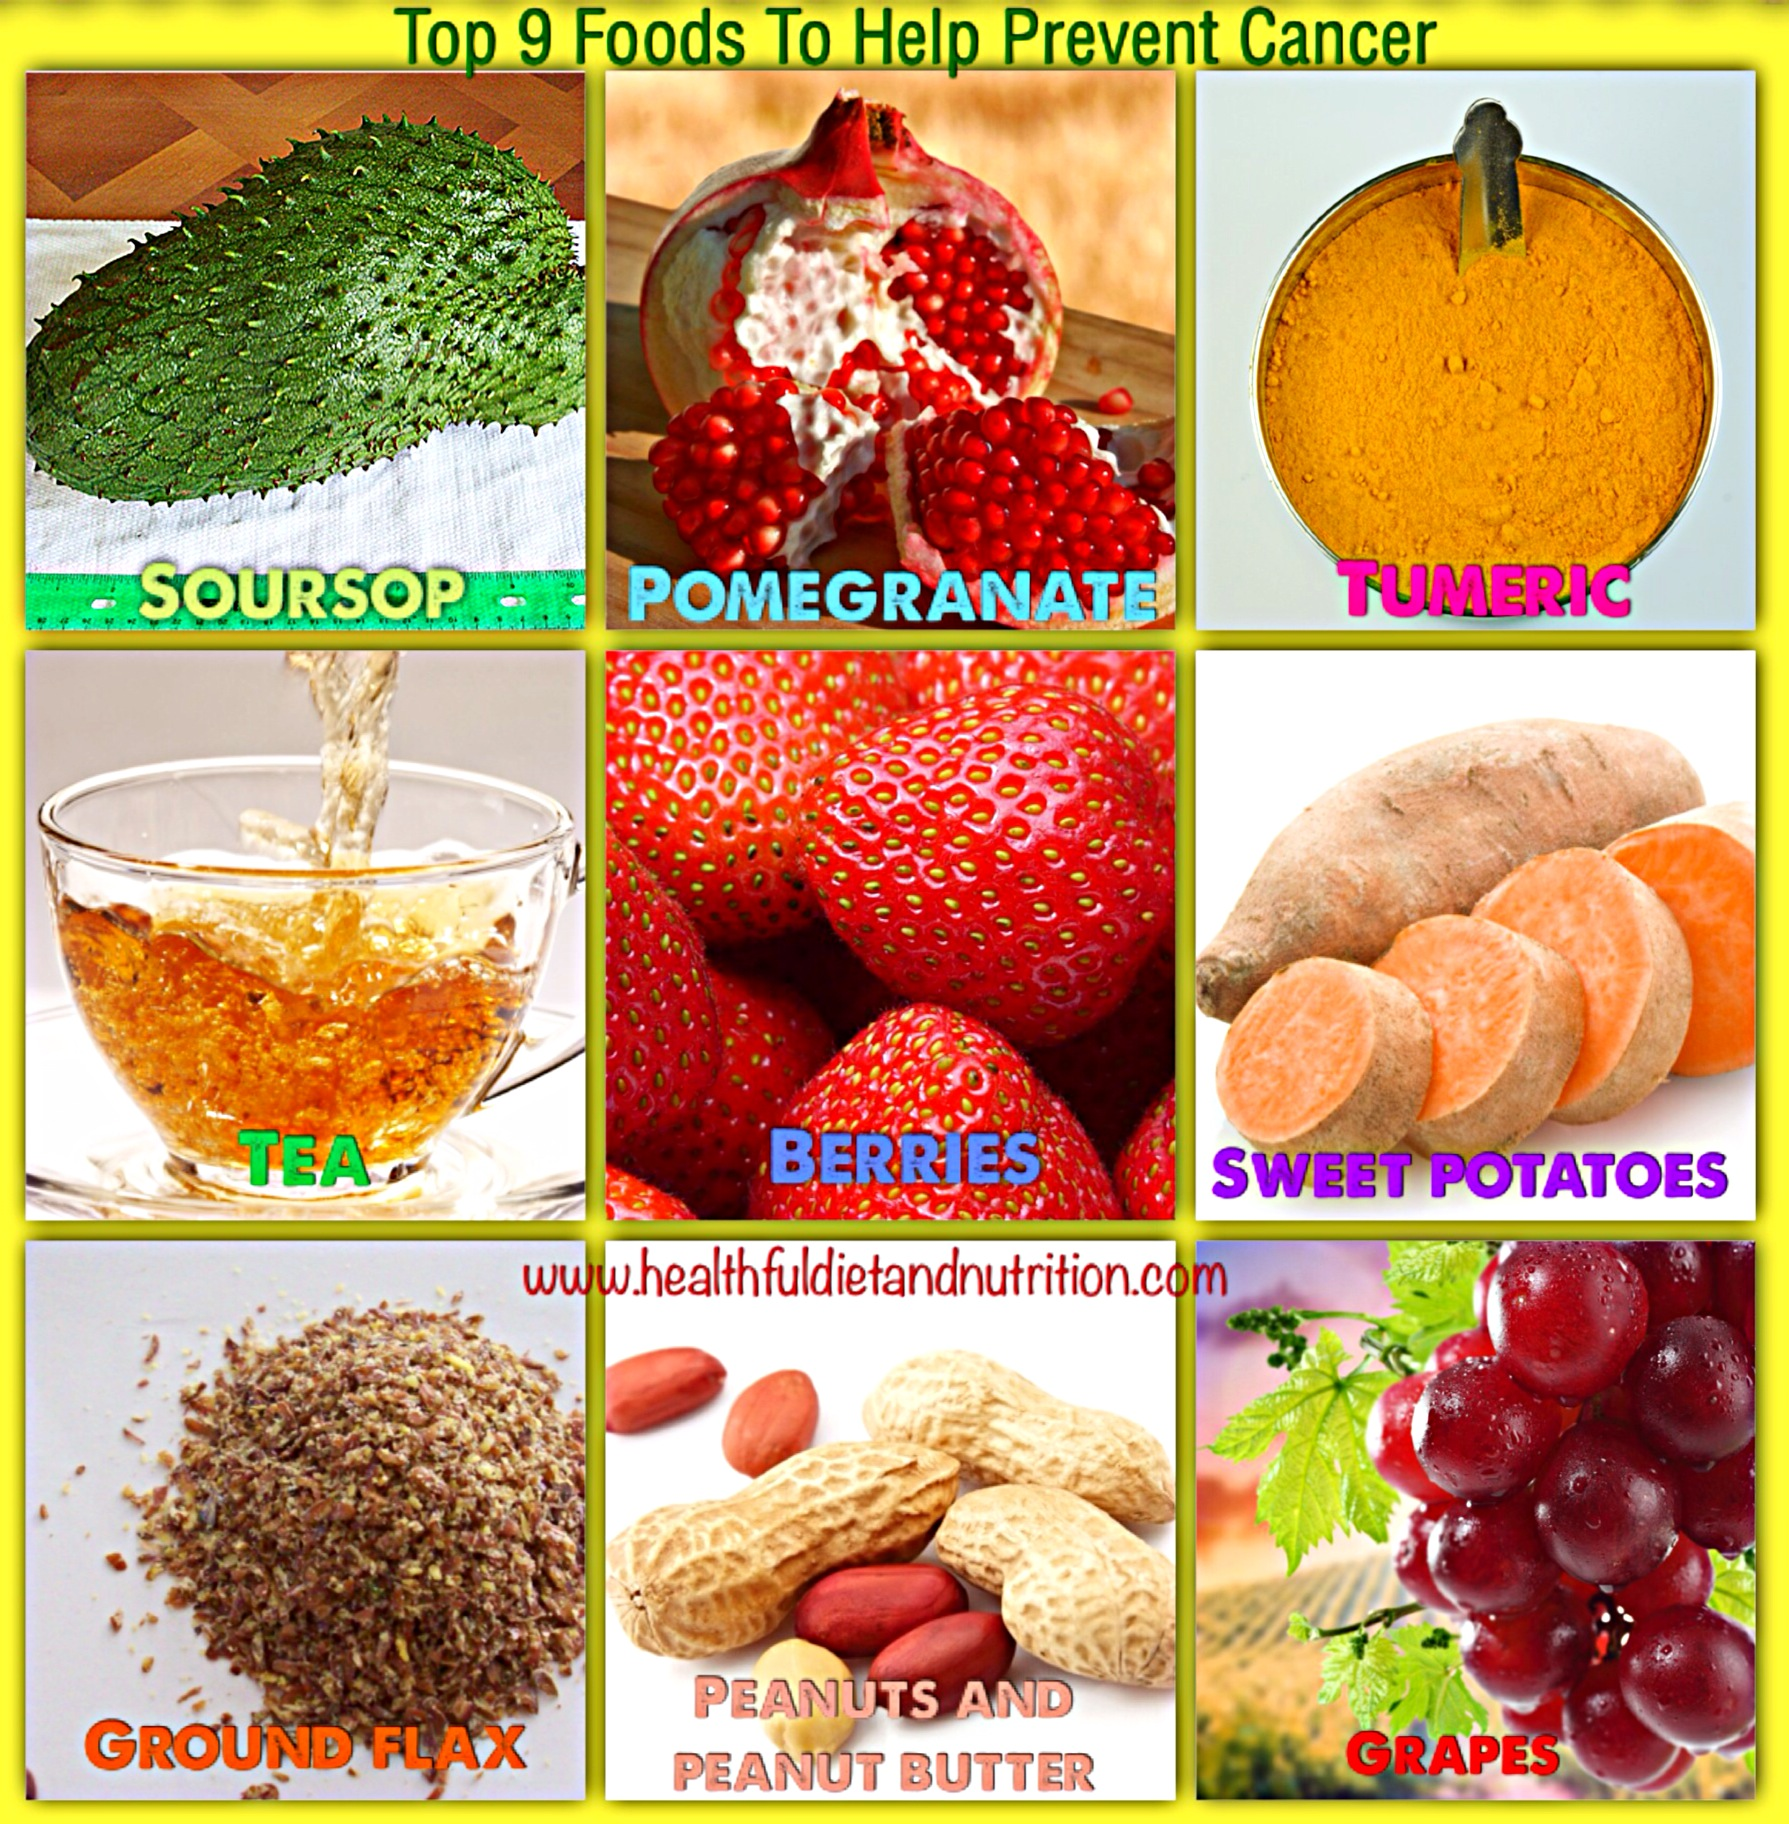 Top 9 Foods To Help Prevent Cancer